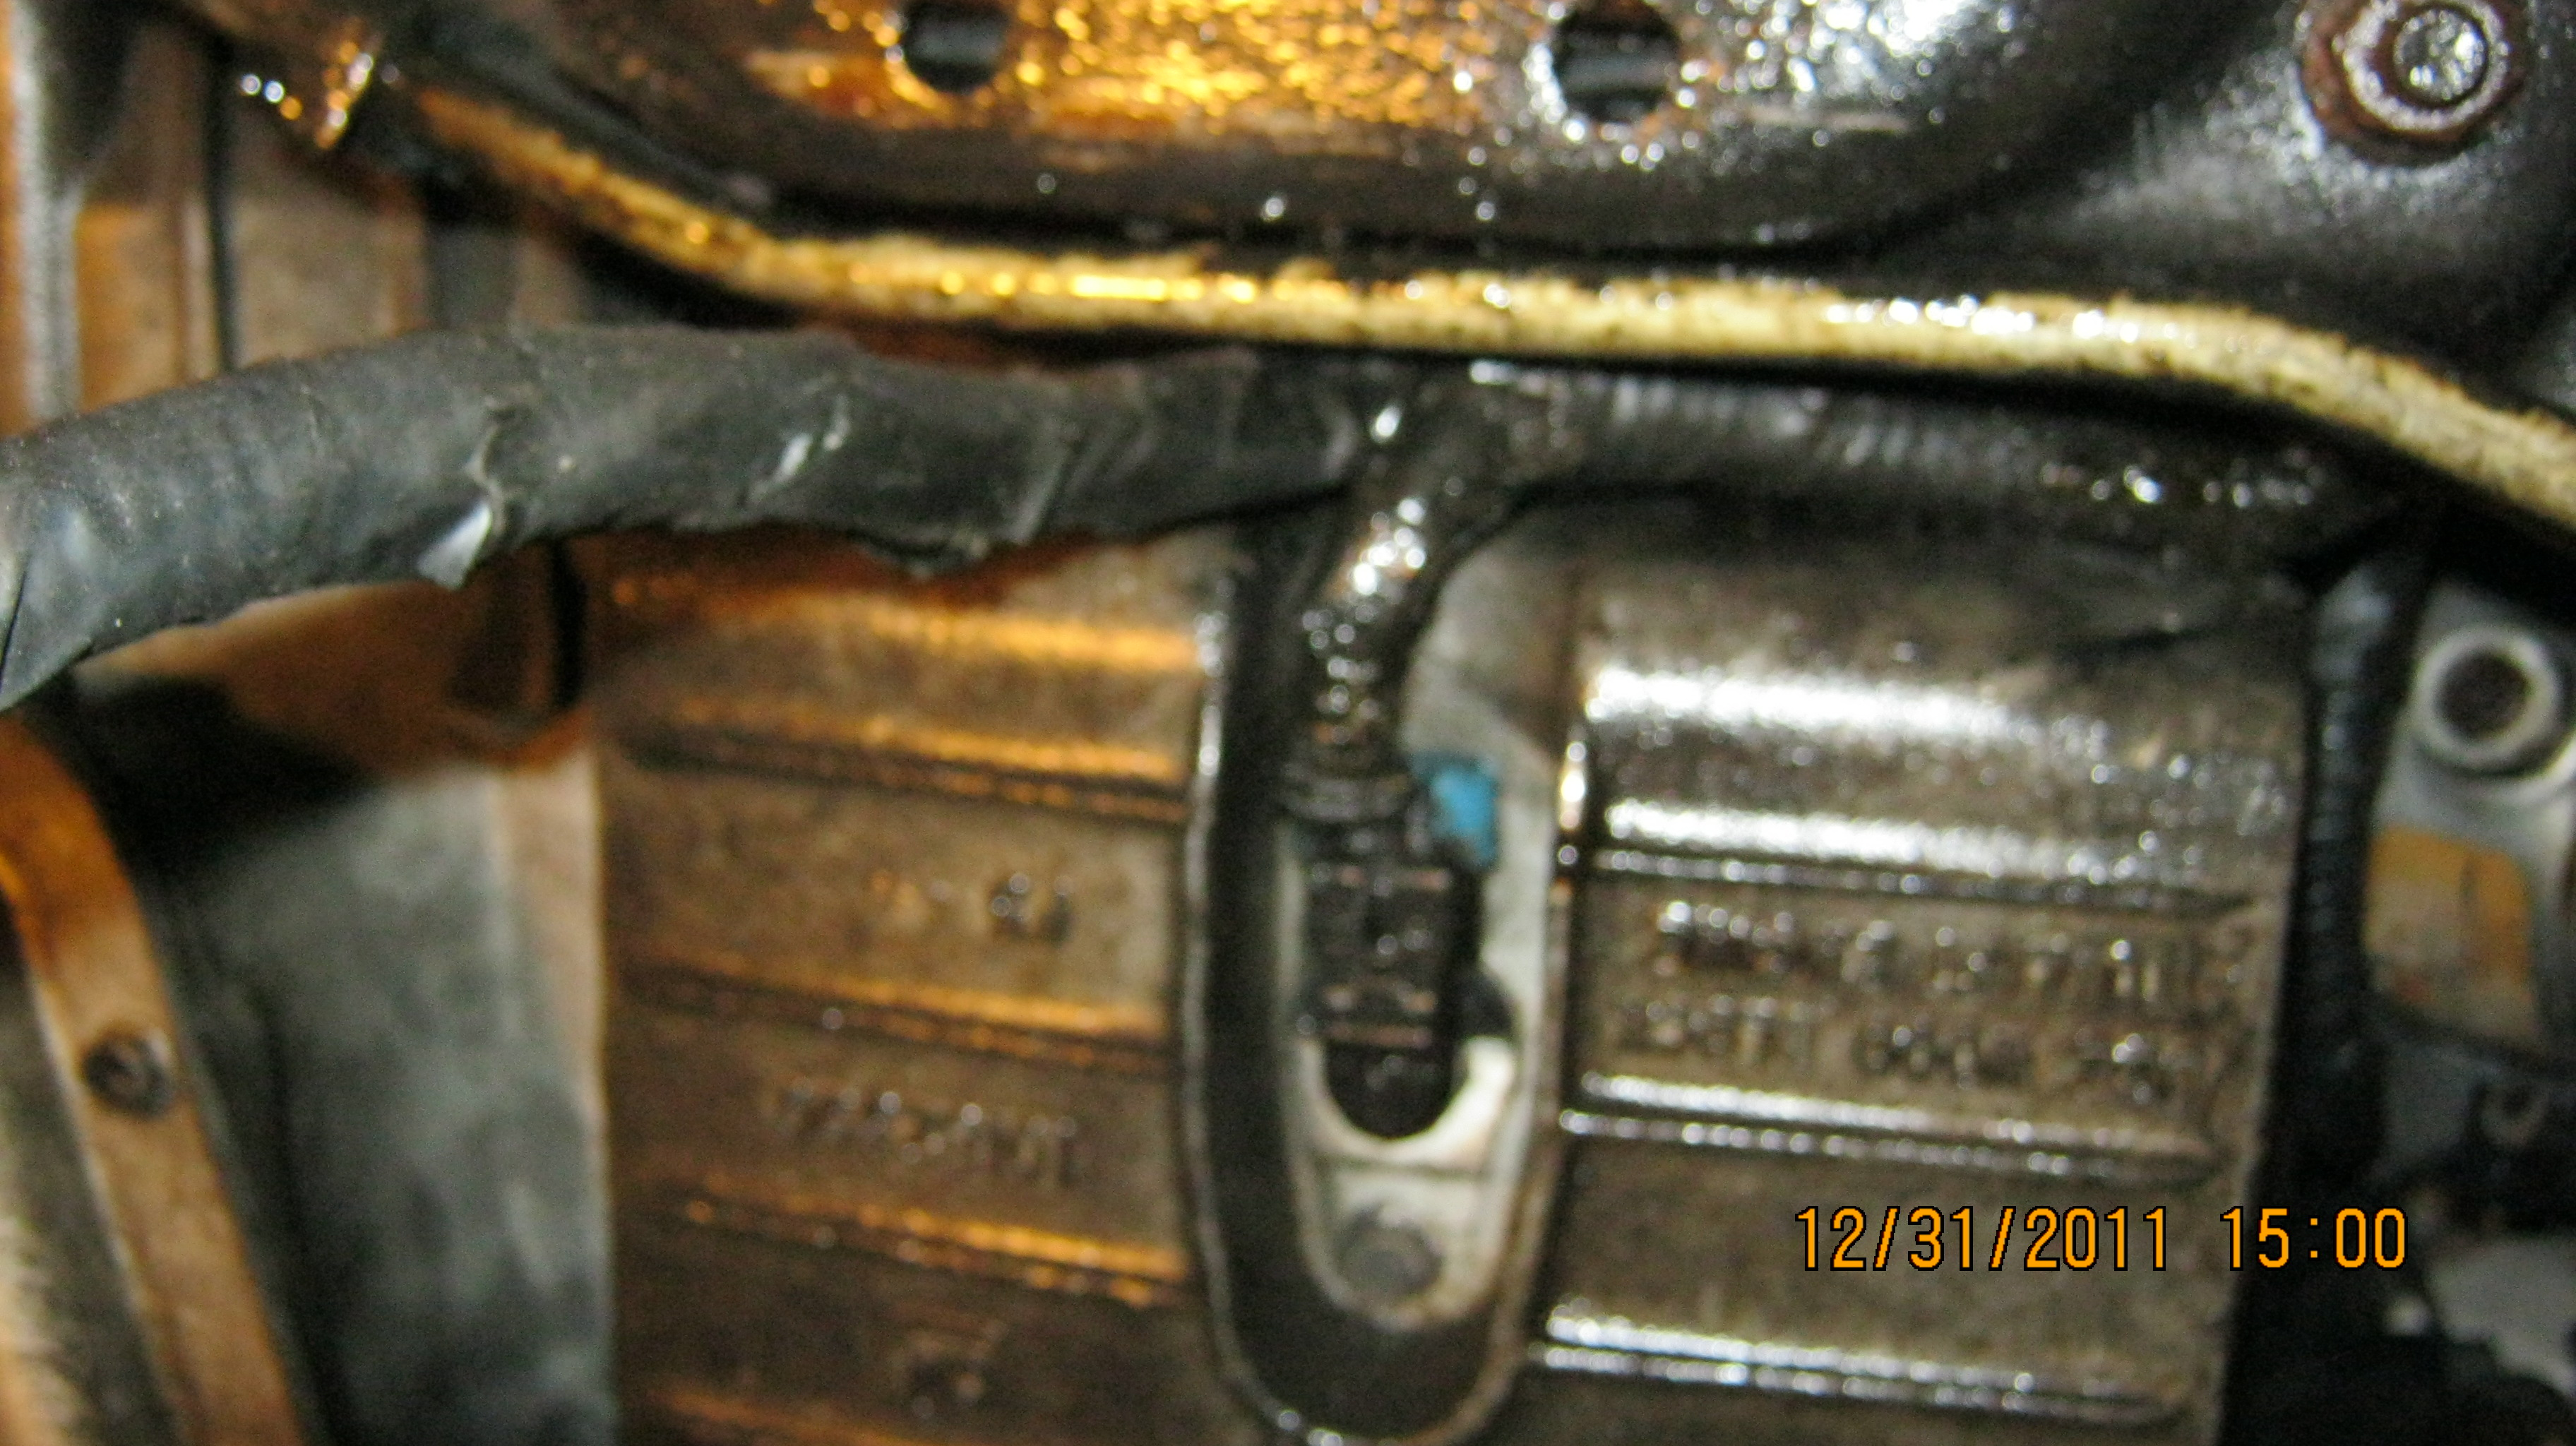 2003 chevy silverado engine diagram 2003 chevy silverado wiring diagram oillevel sensor